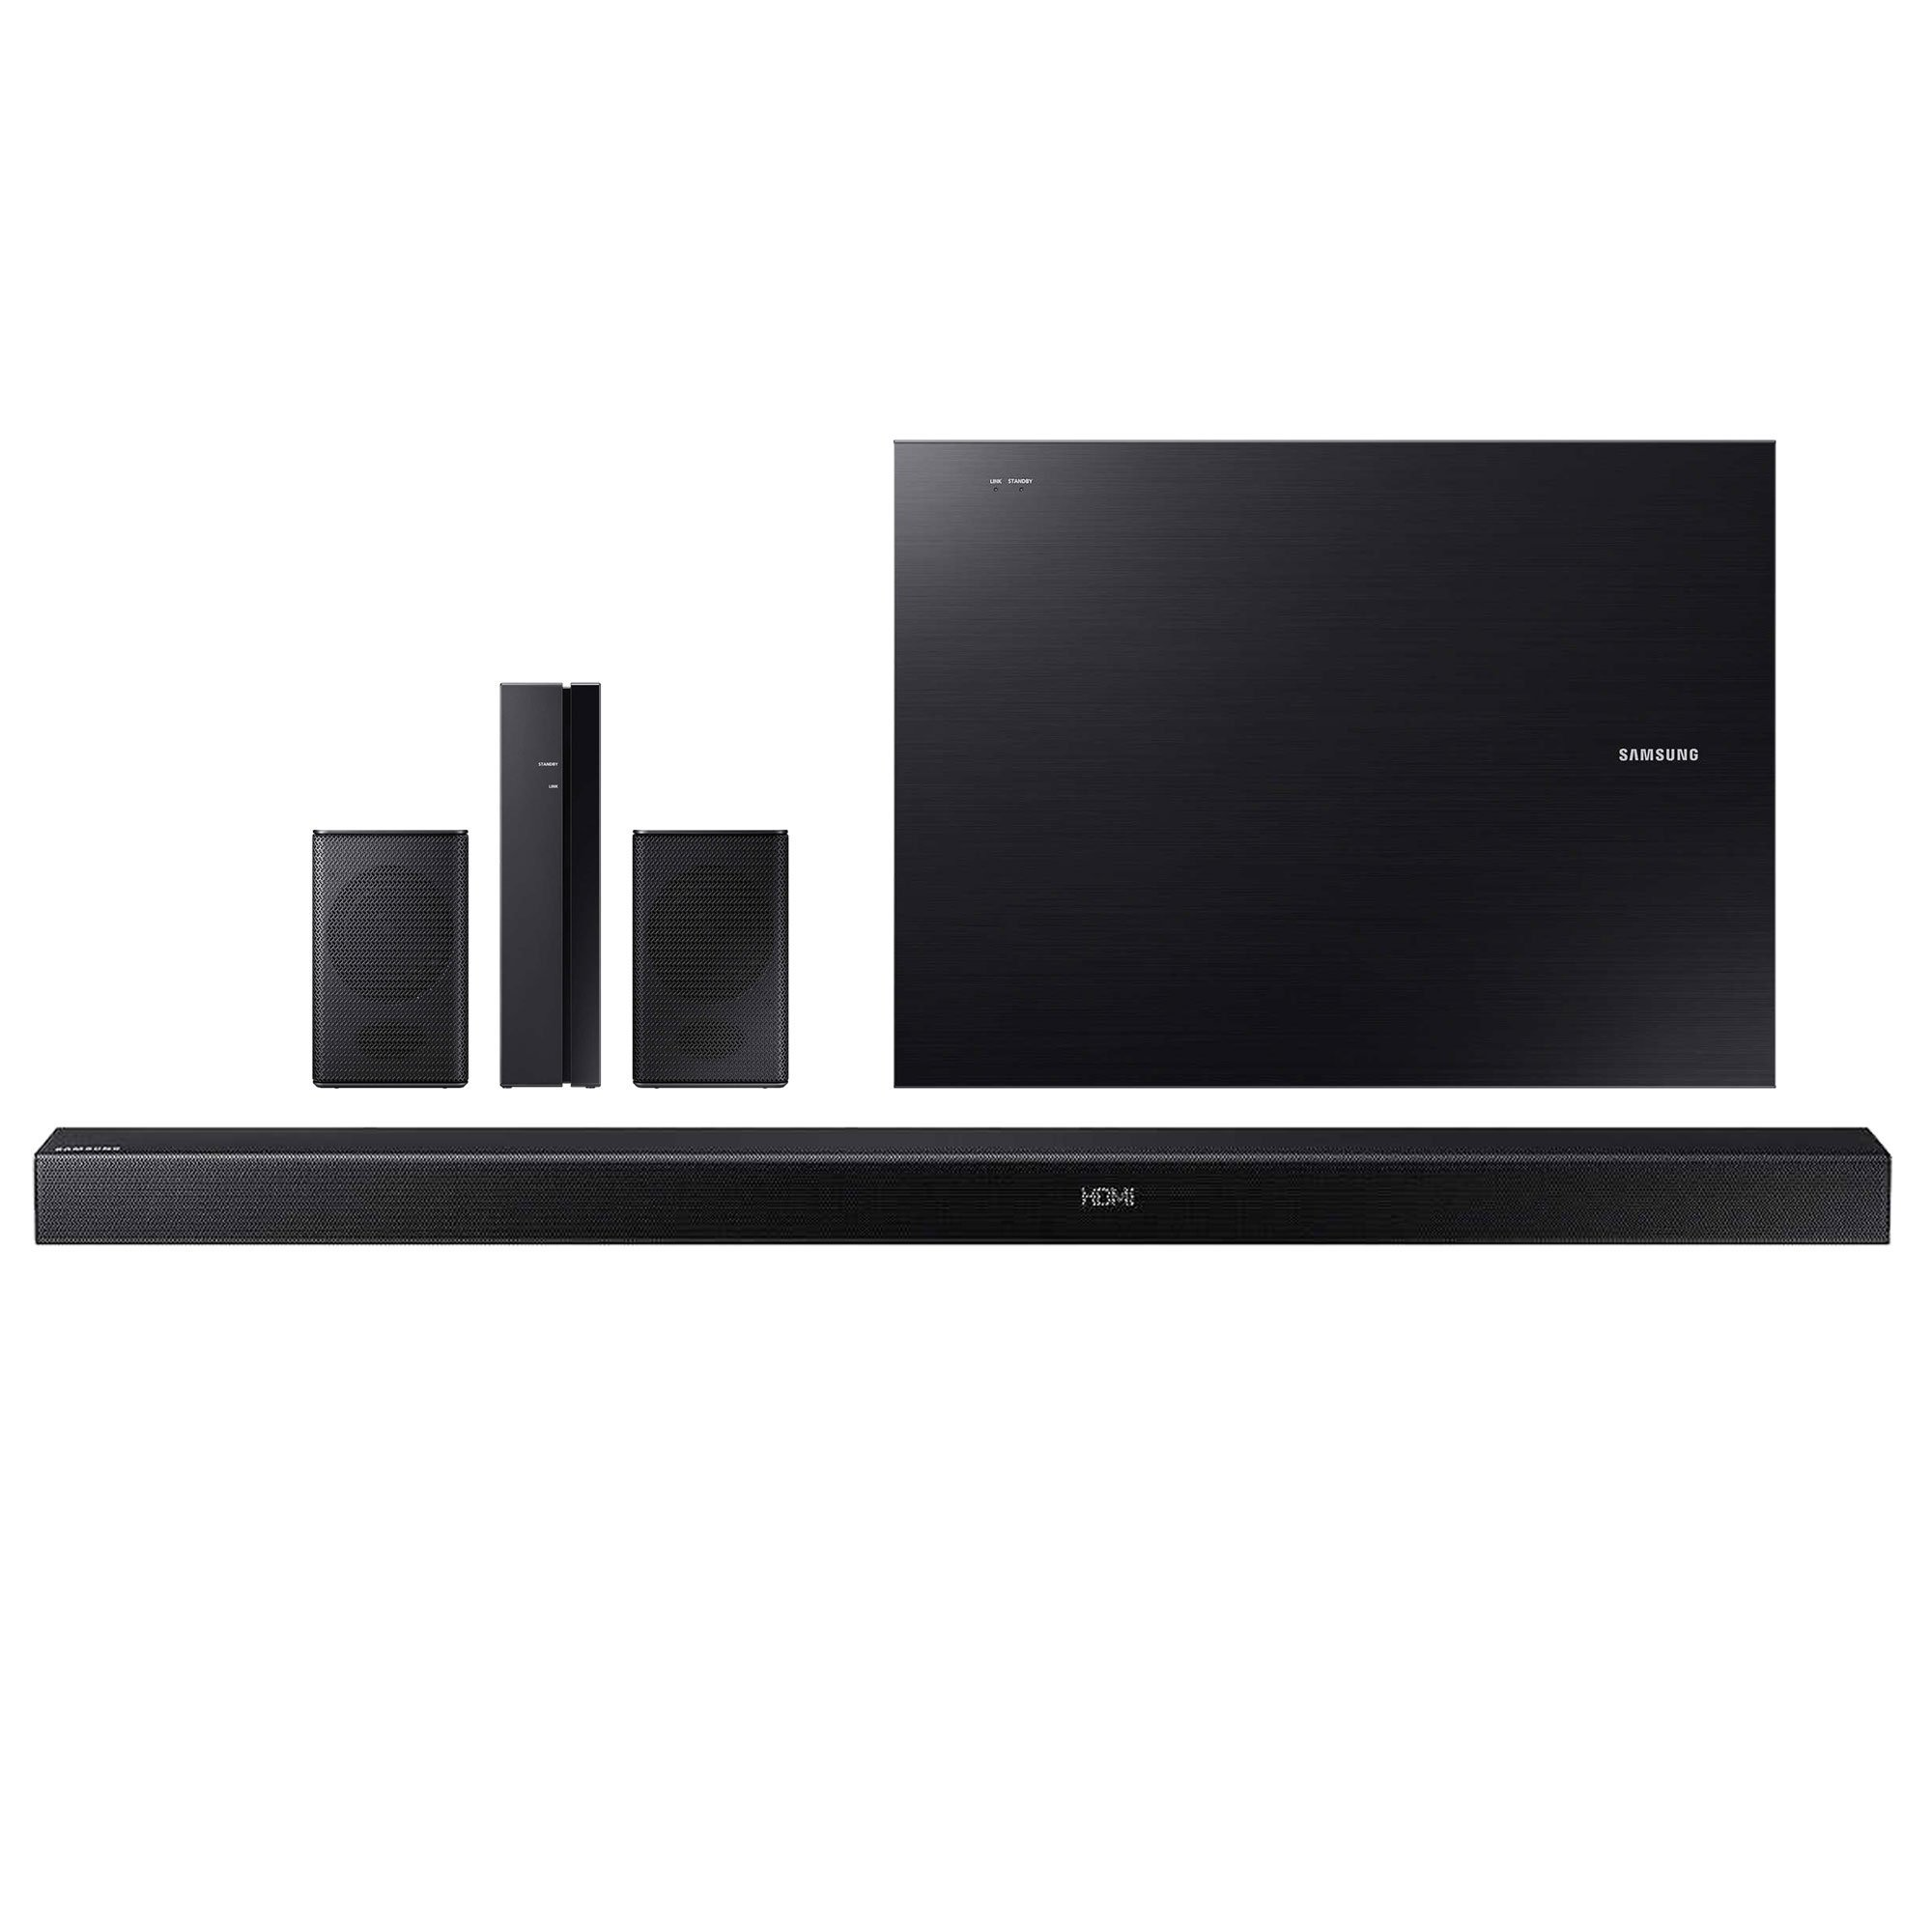 Samsung 5.1 Channel Sound Bar System With Wireless Sub And Rear Speakers Bluetooth, Black (Certified Refurbished) by Samsung